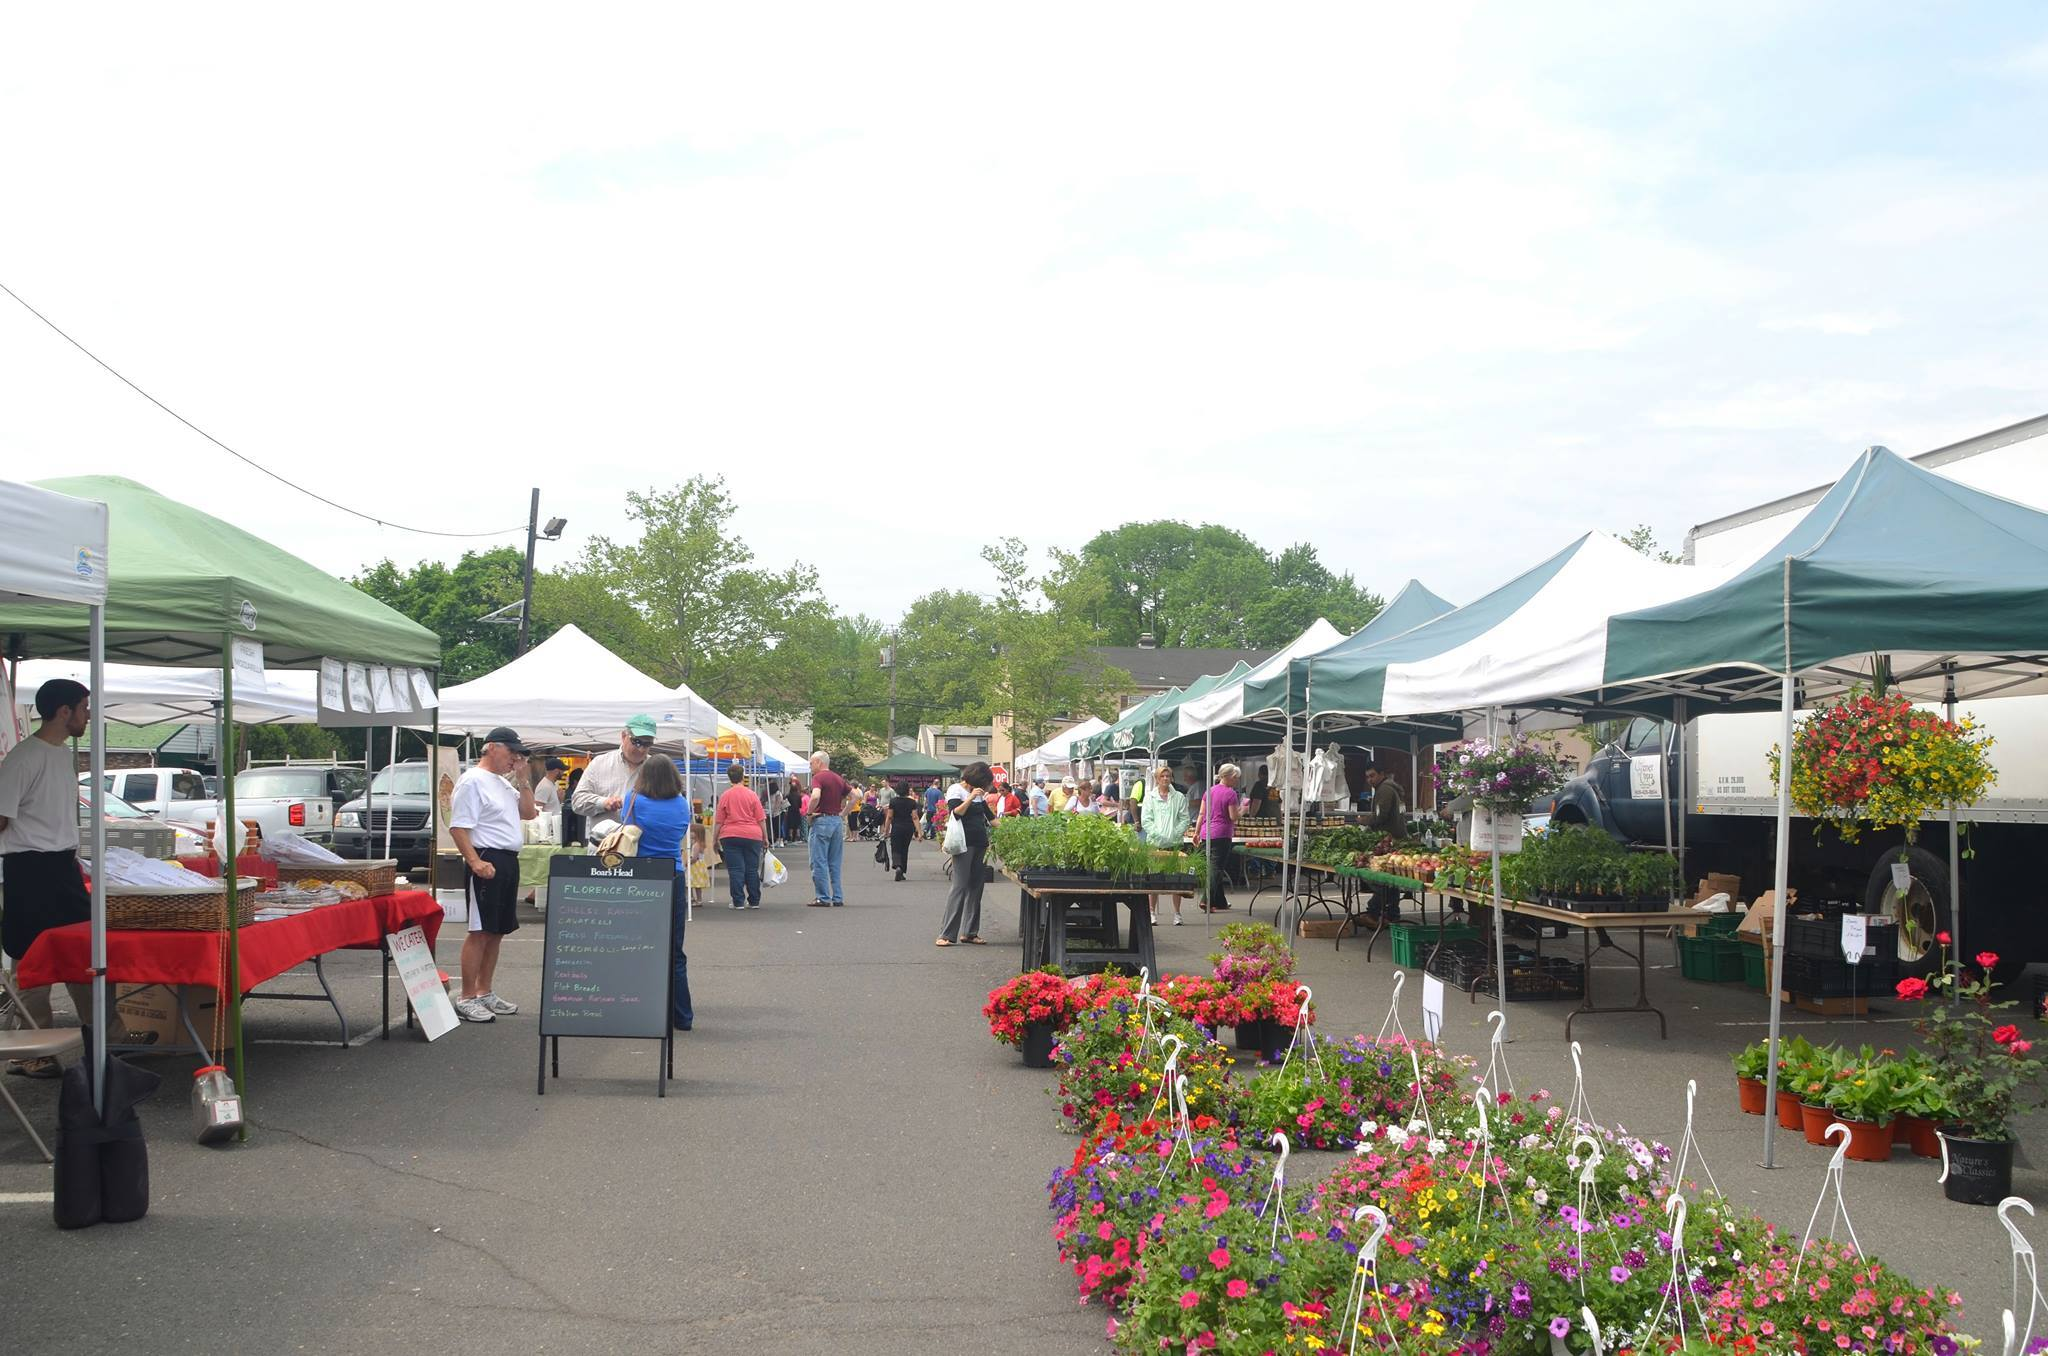 24b67b61f4a3975bf498_scotch-plains-farmers-market2.jpg